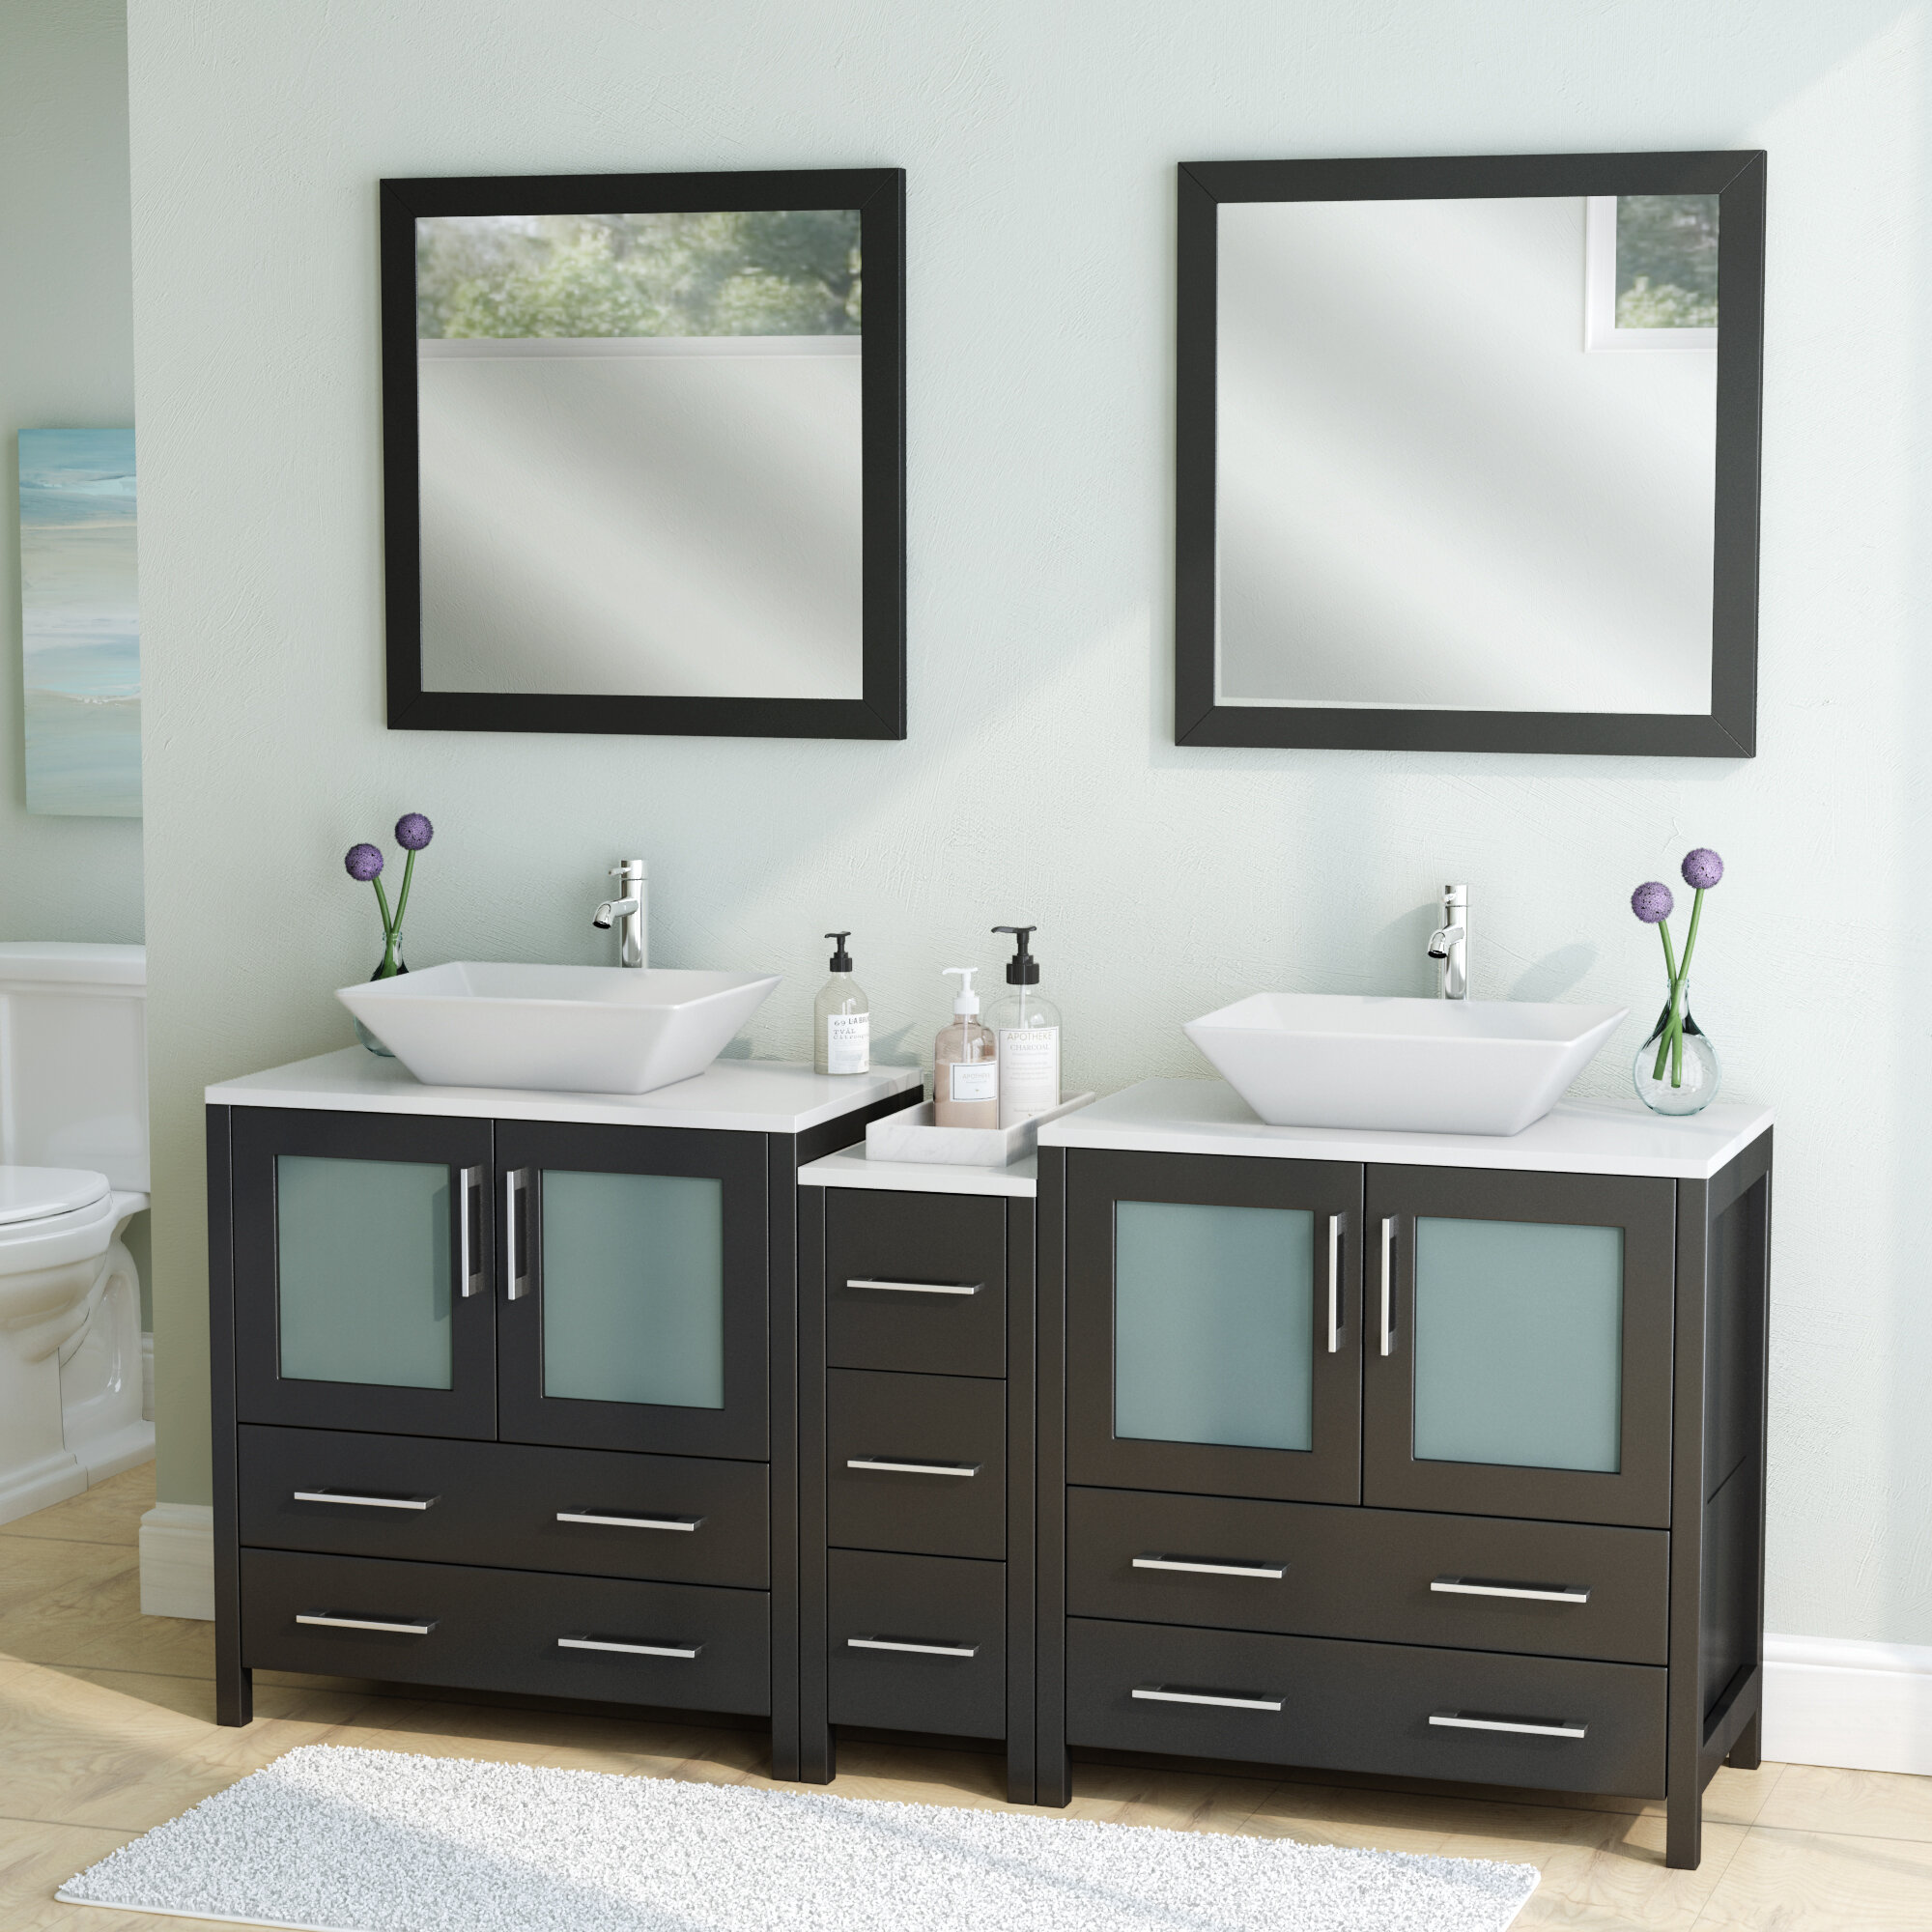 Wade Logan Karson Framed 72 Double Bathroom Vanity Set With Mirror Reviews Wayfair